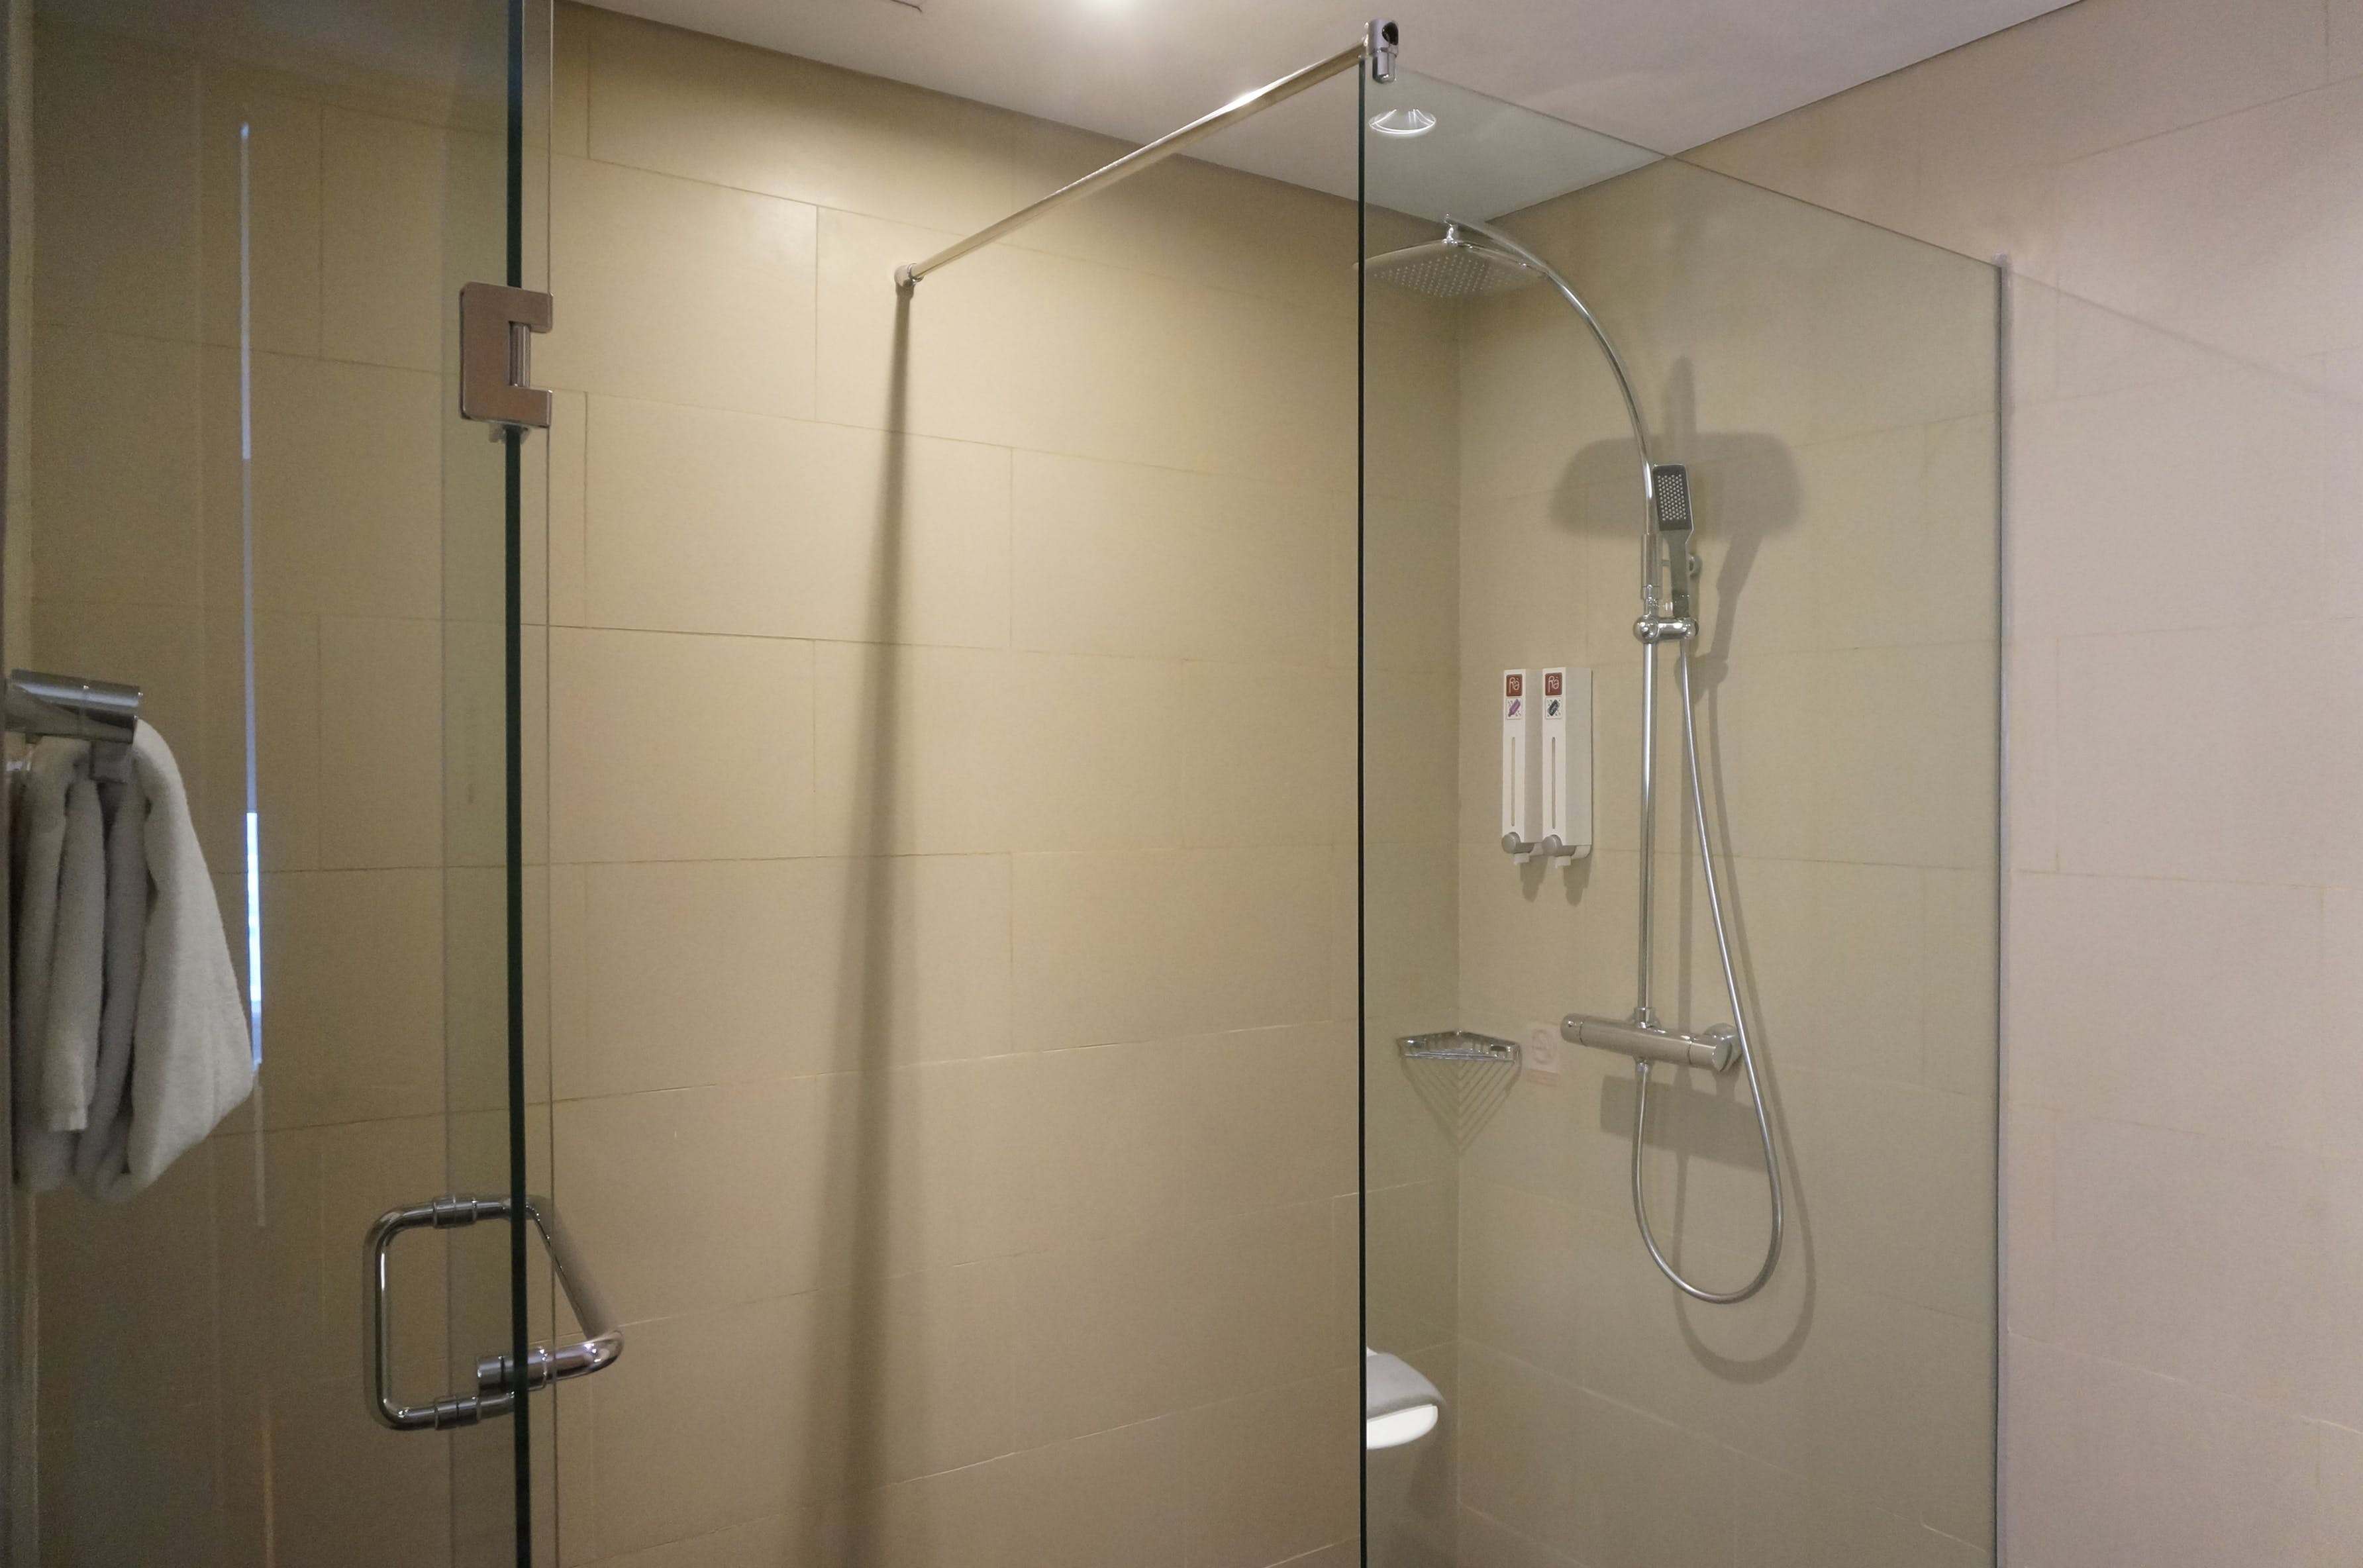 Bathroom Ra Executive Suite-4